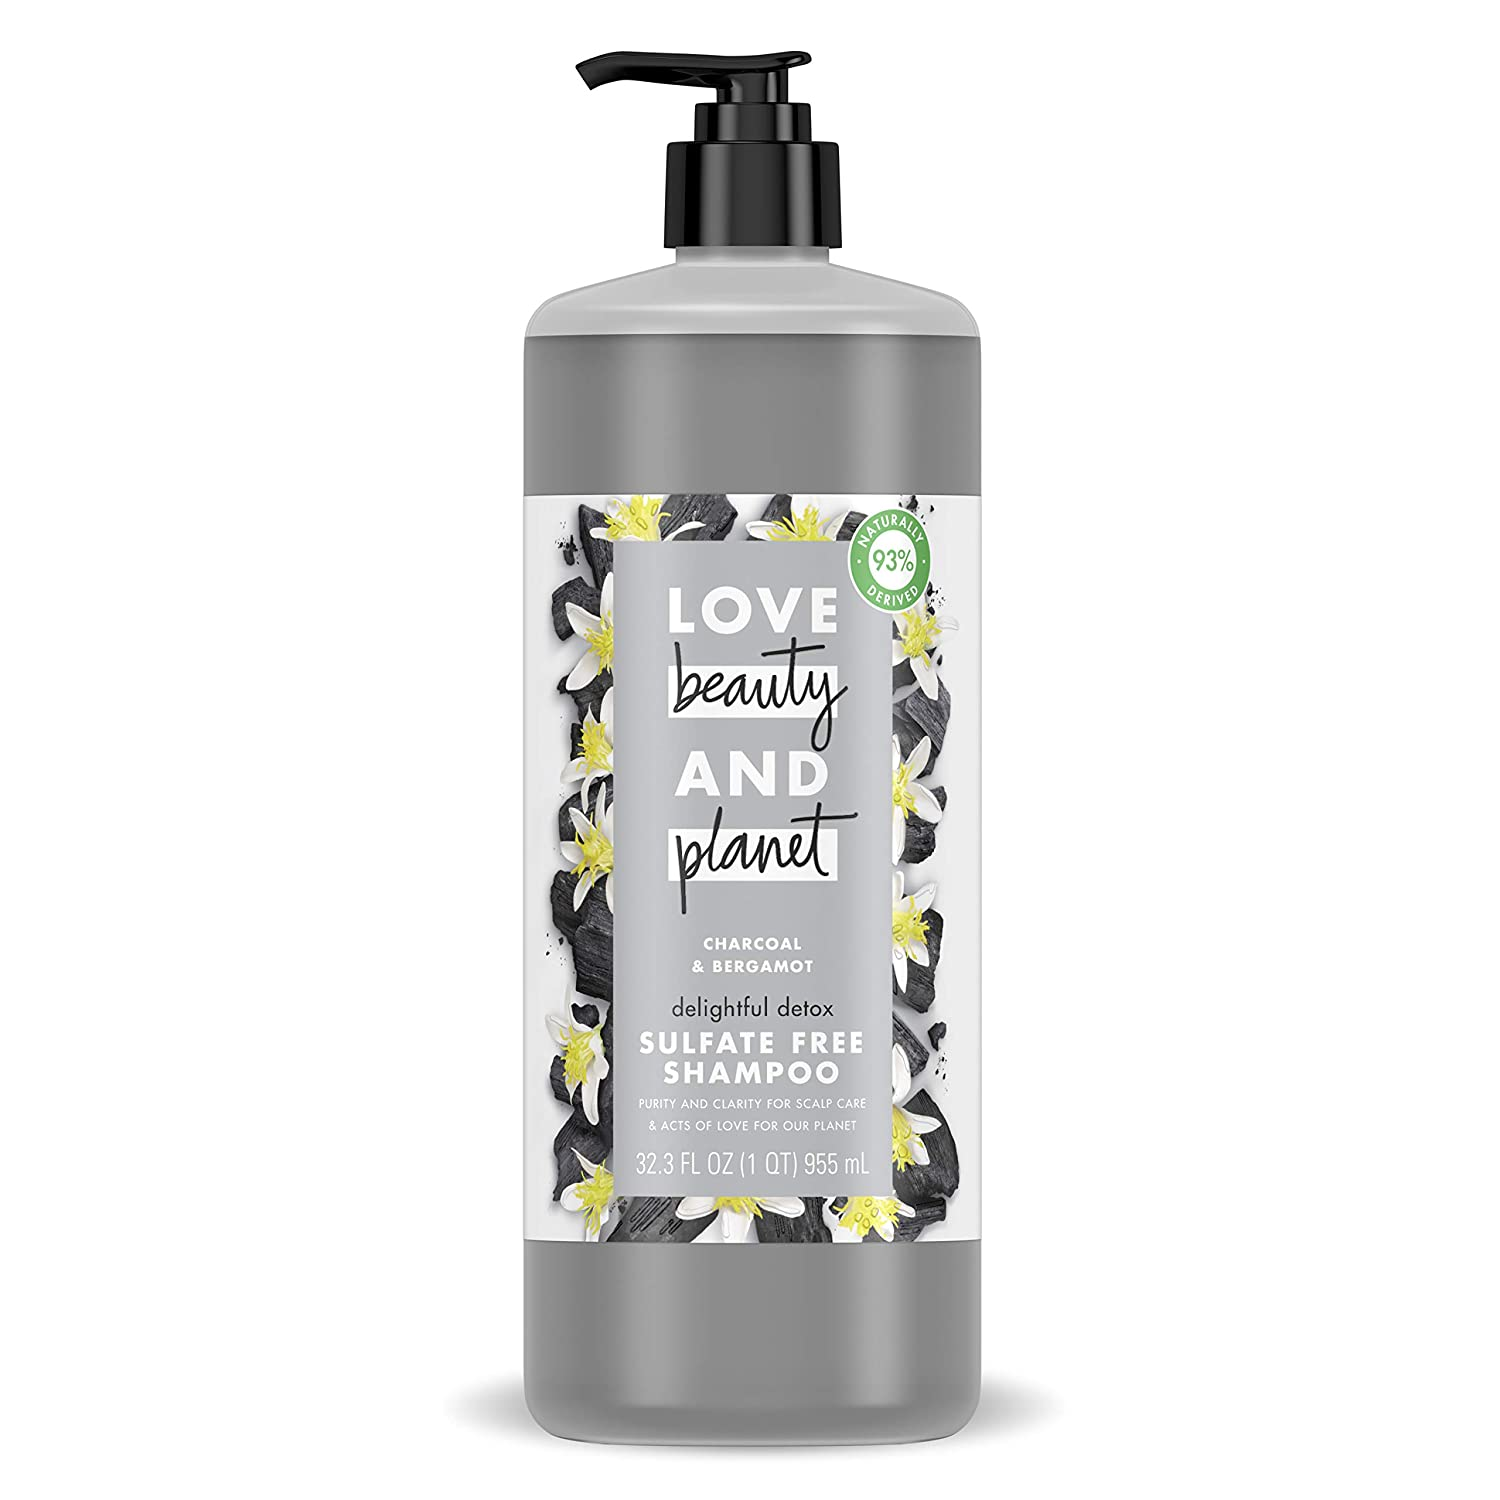 Love Beauty & Planet Shampoo for a Delightful Detox Charcoal and Bergamot Sulfate Free 32.3 oz